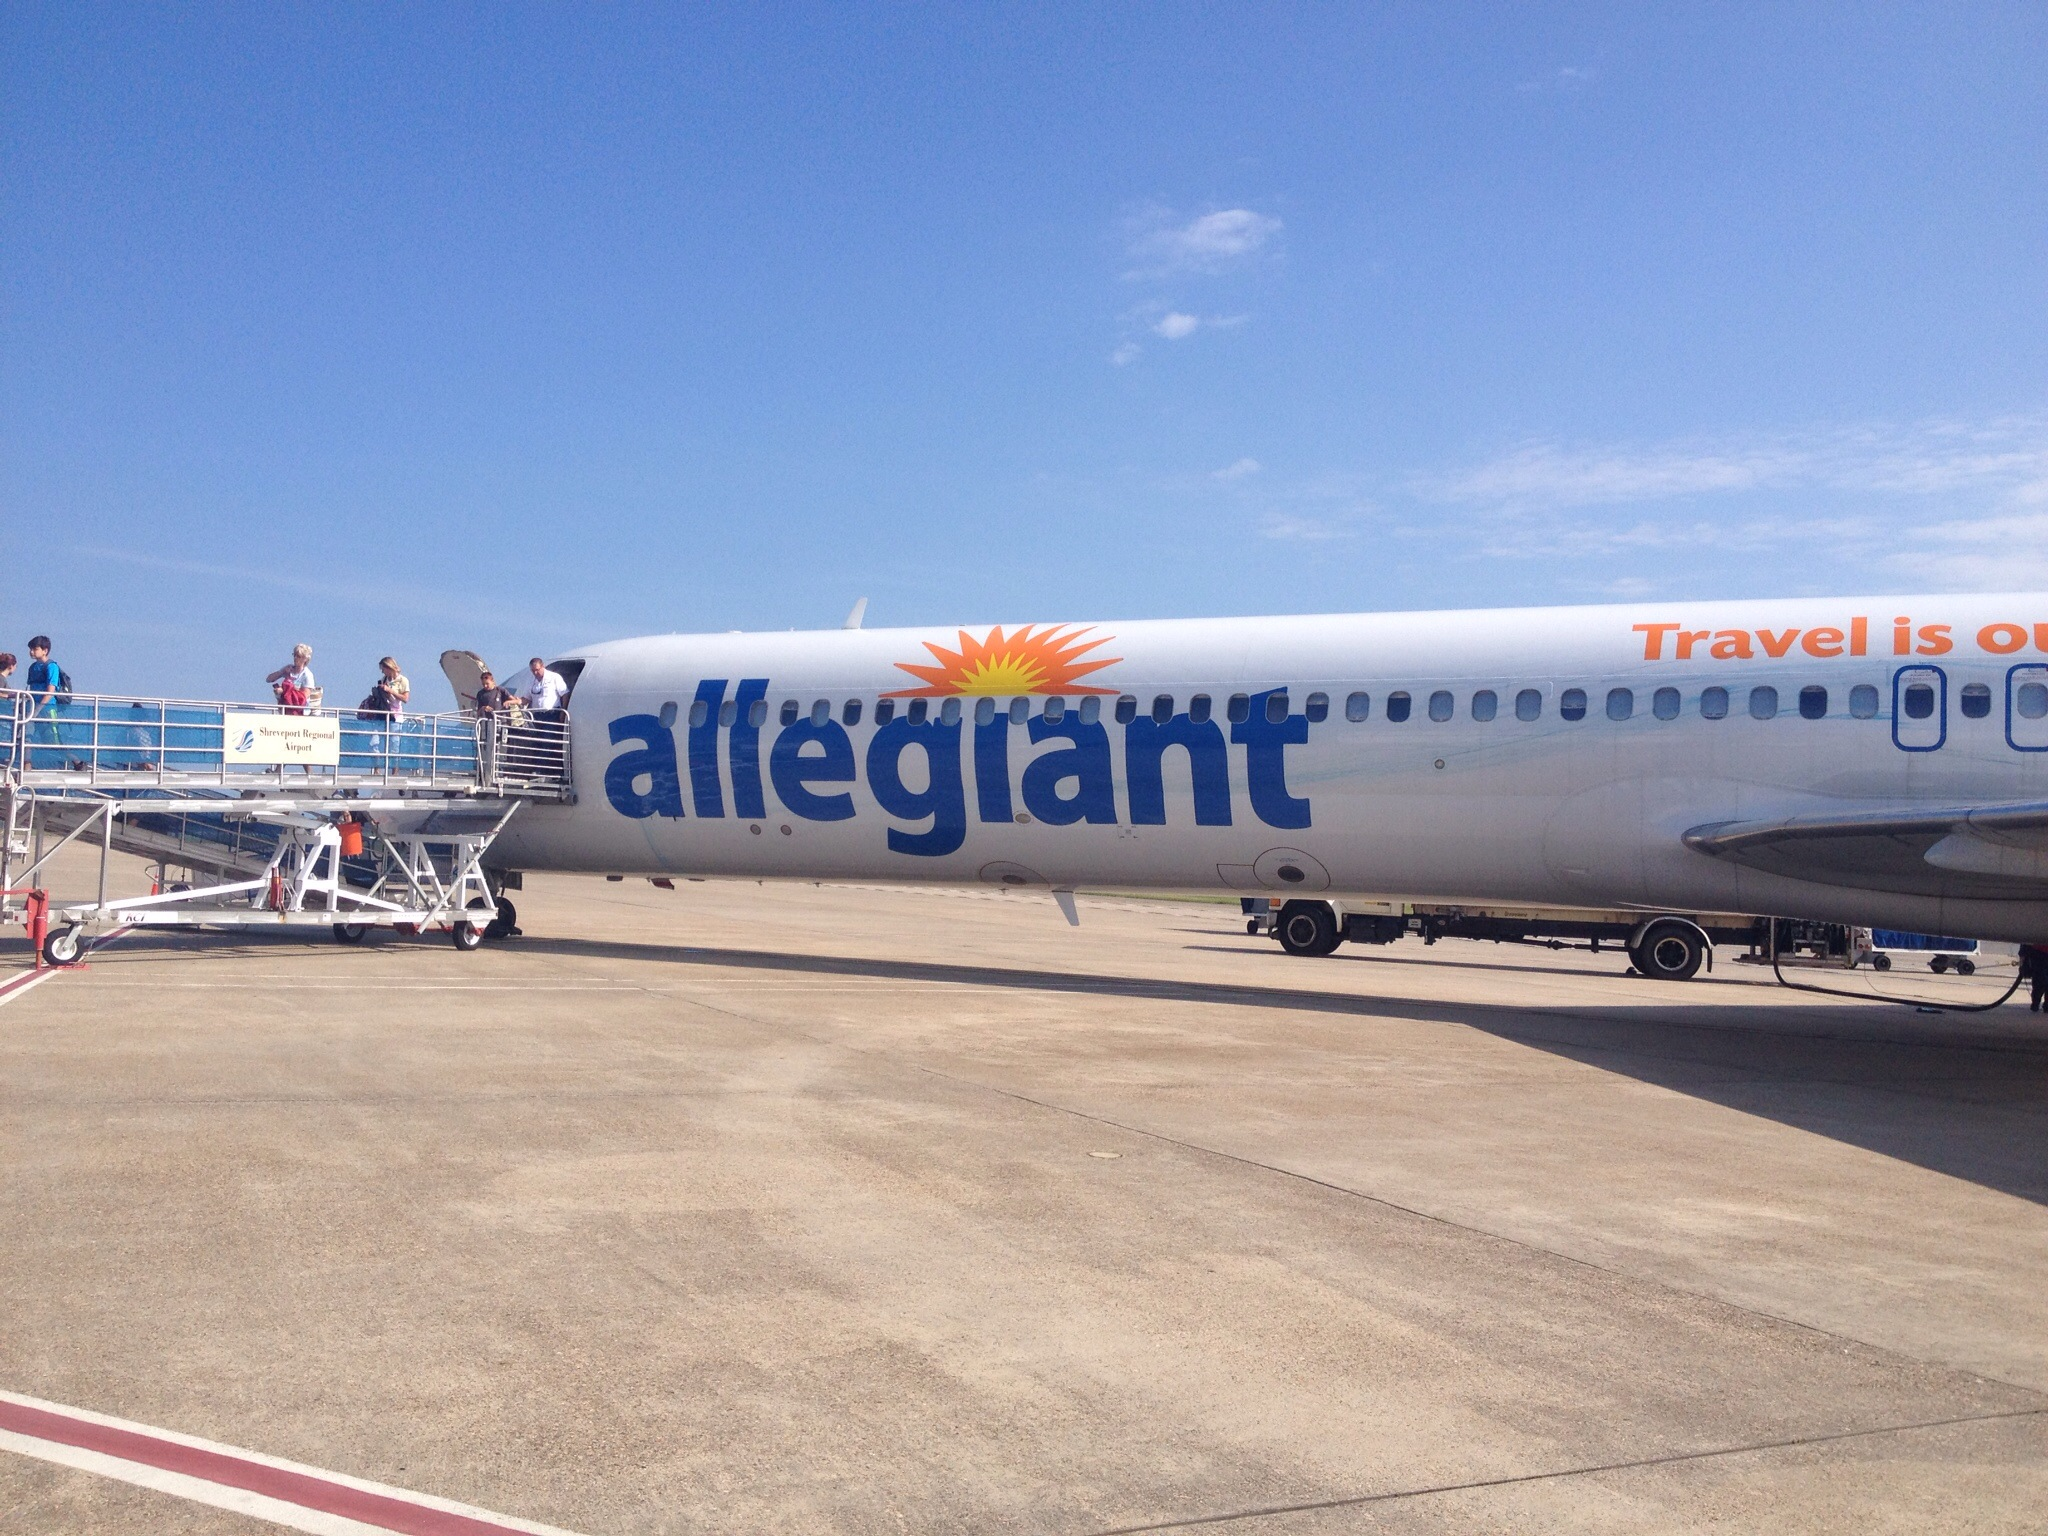 Allegiant Air Retires Outdated Planes That Caused Safety